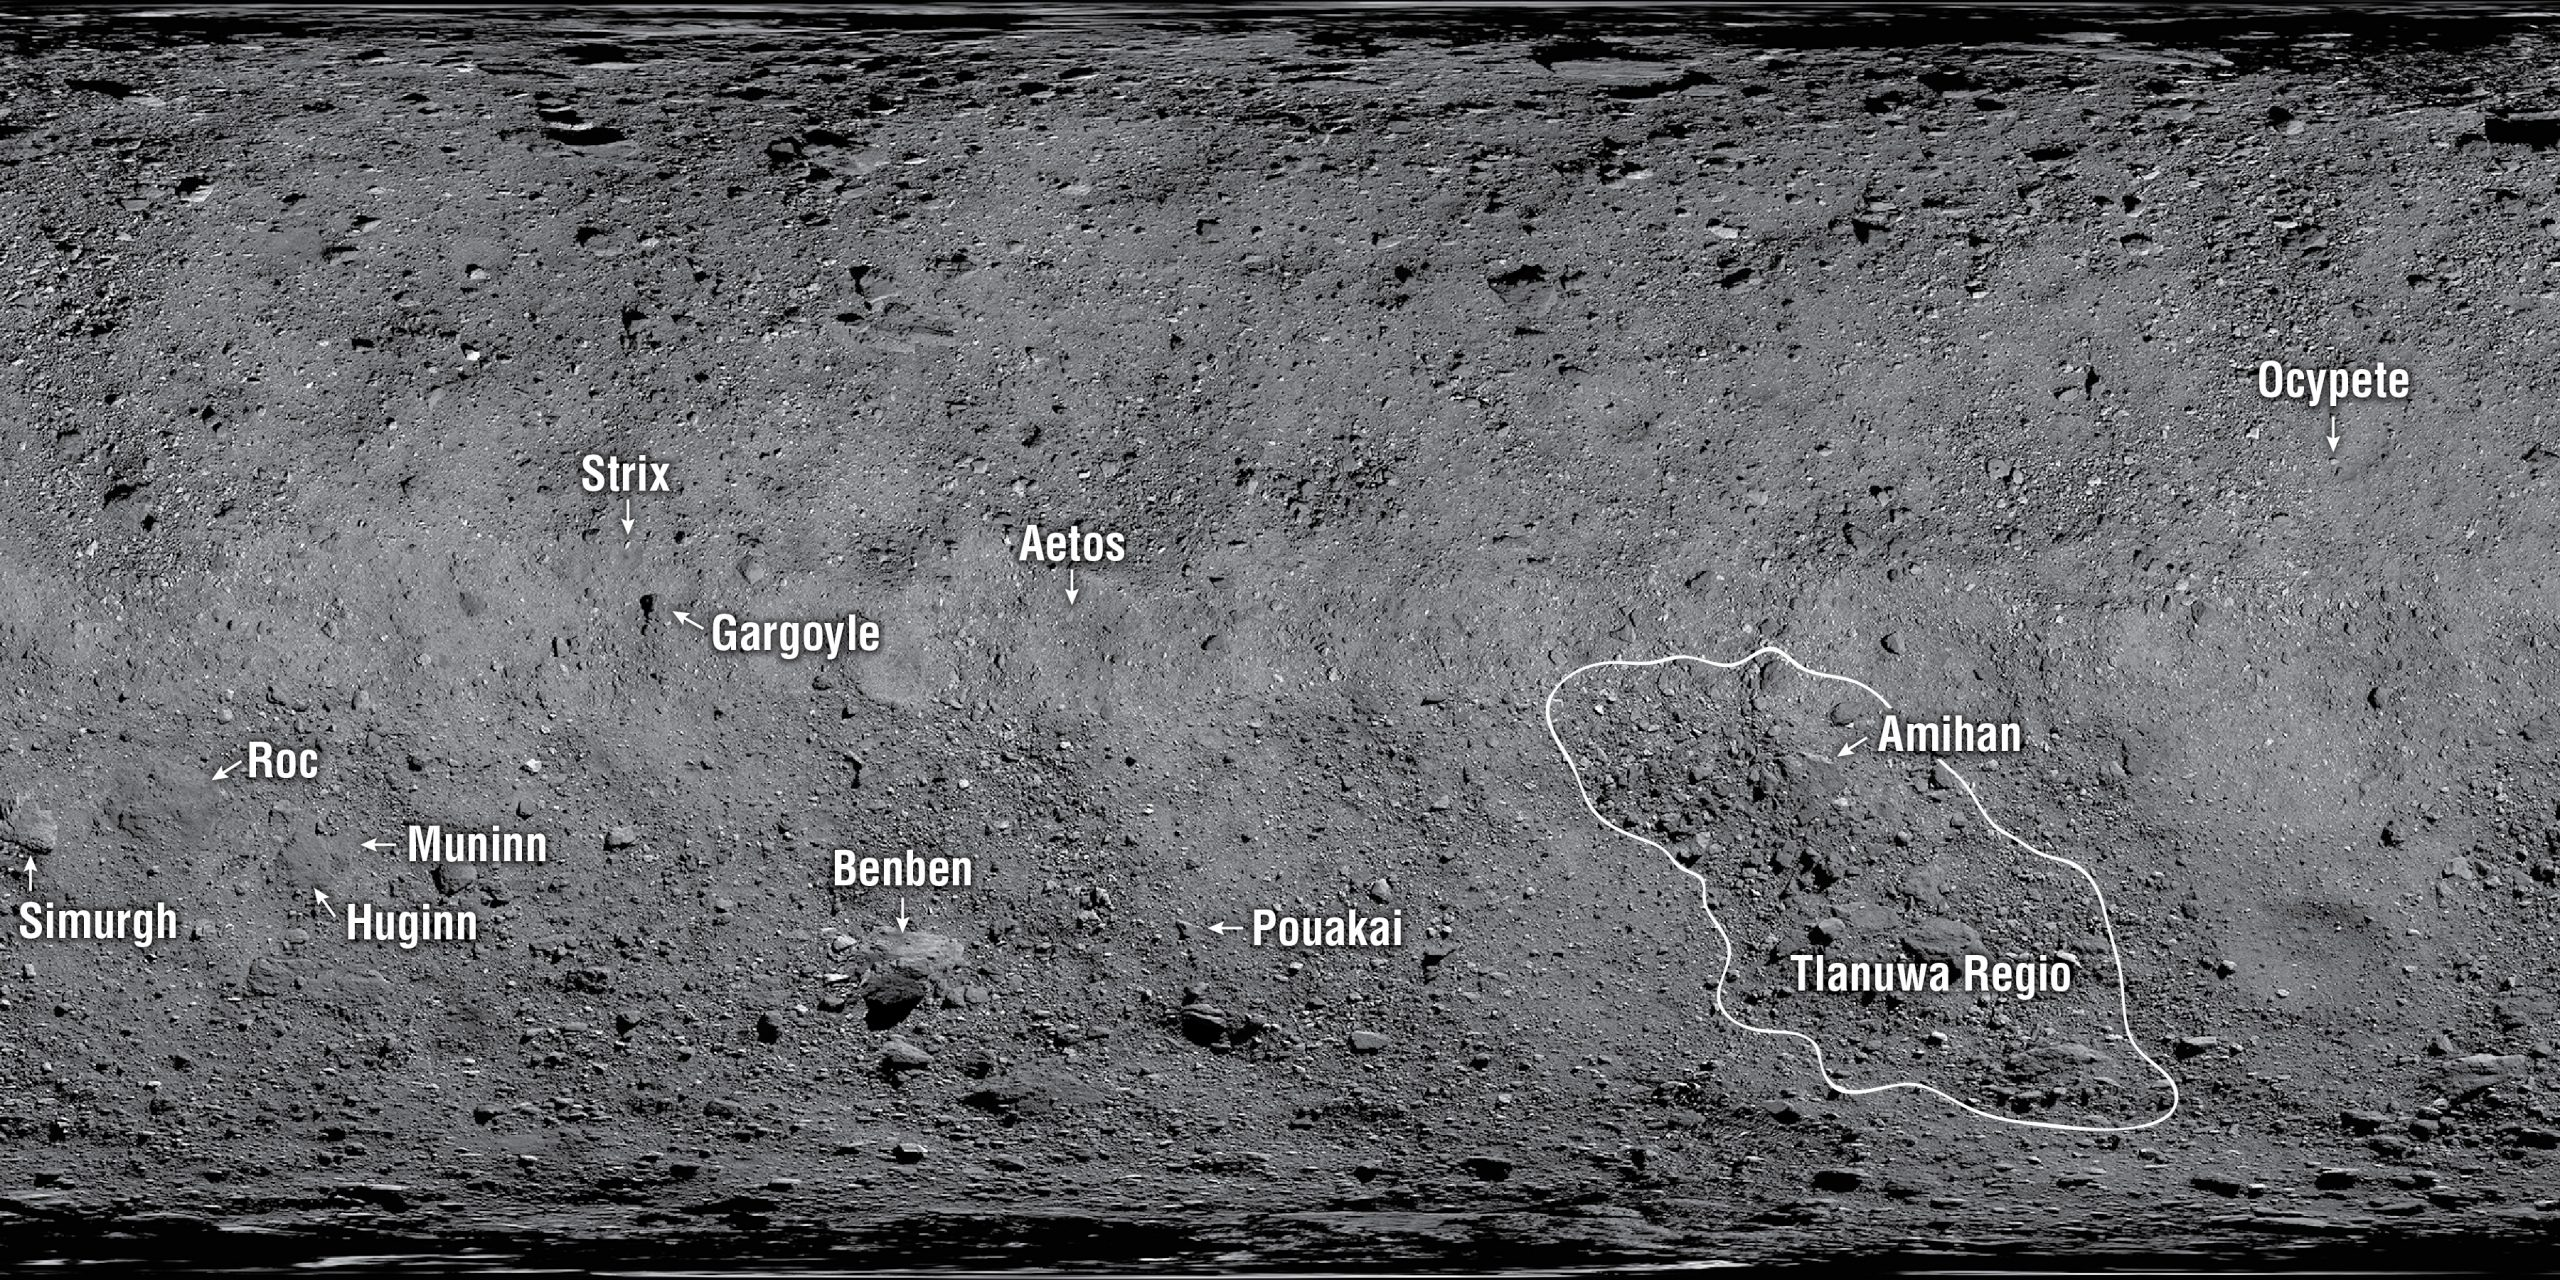 carte de la surface de Bennu